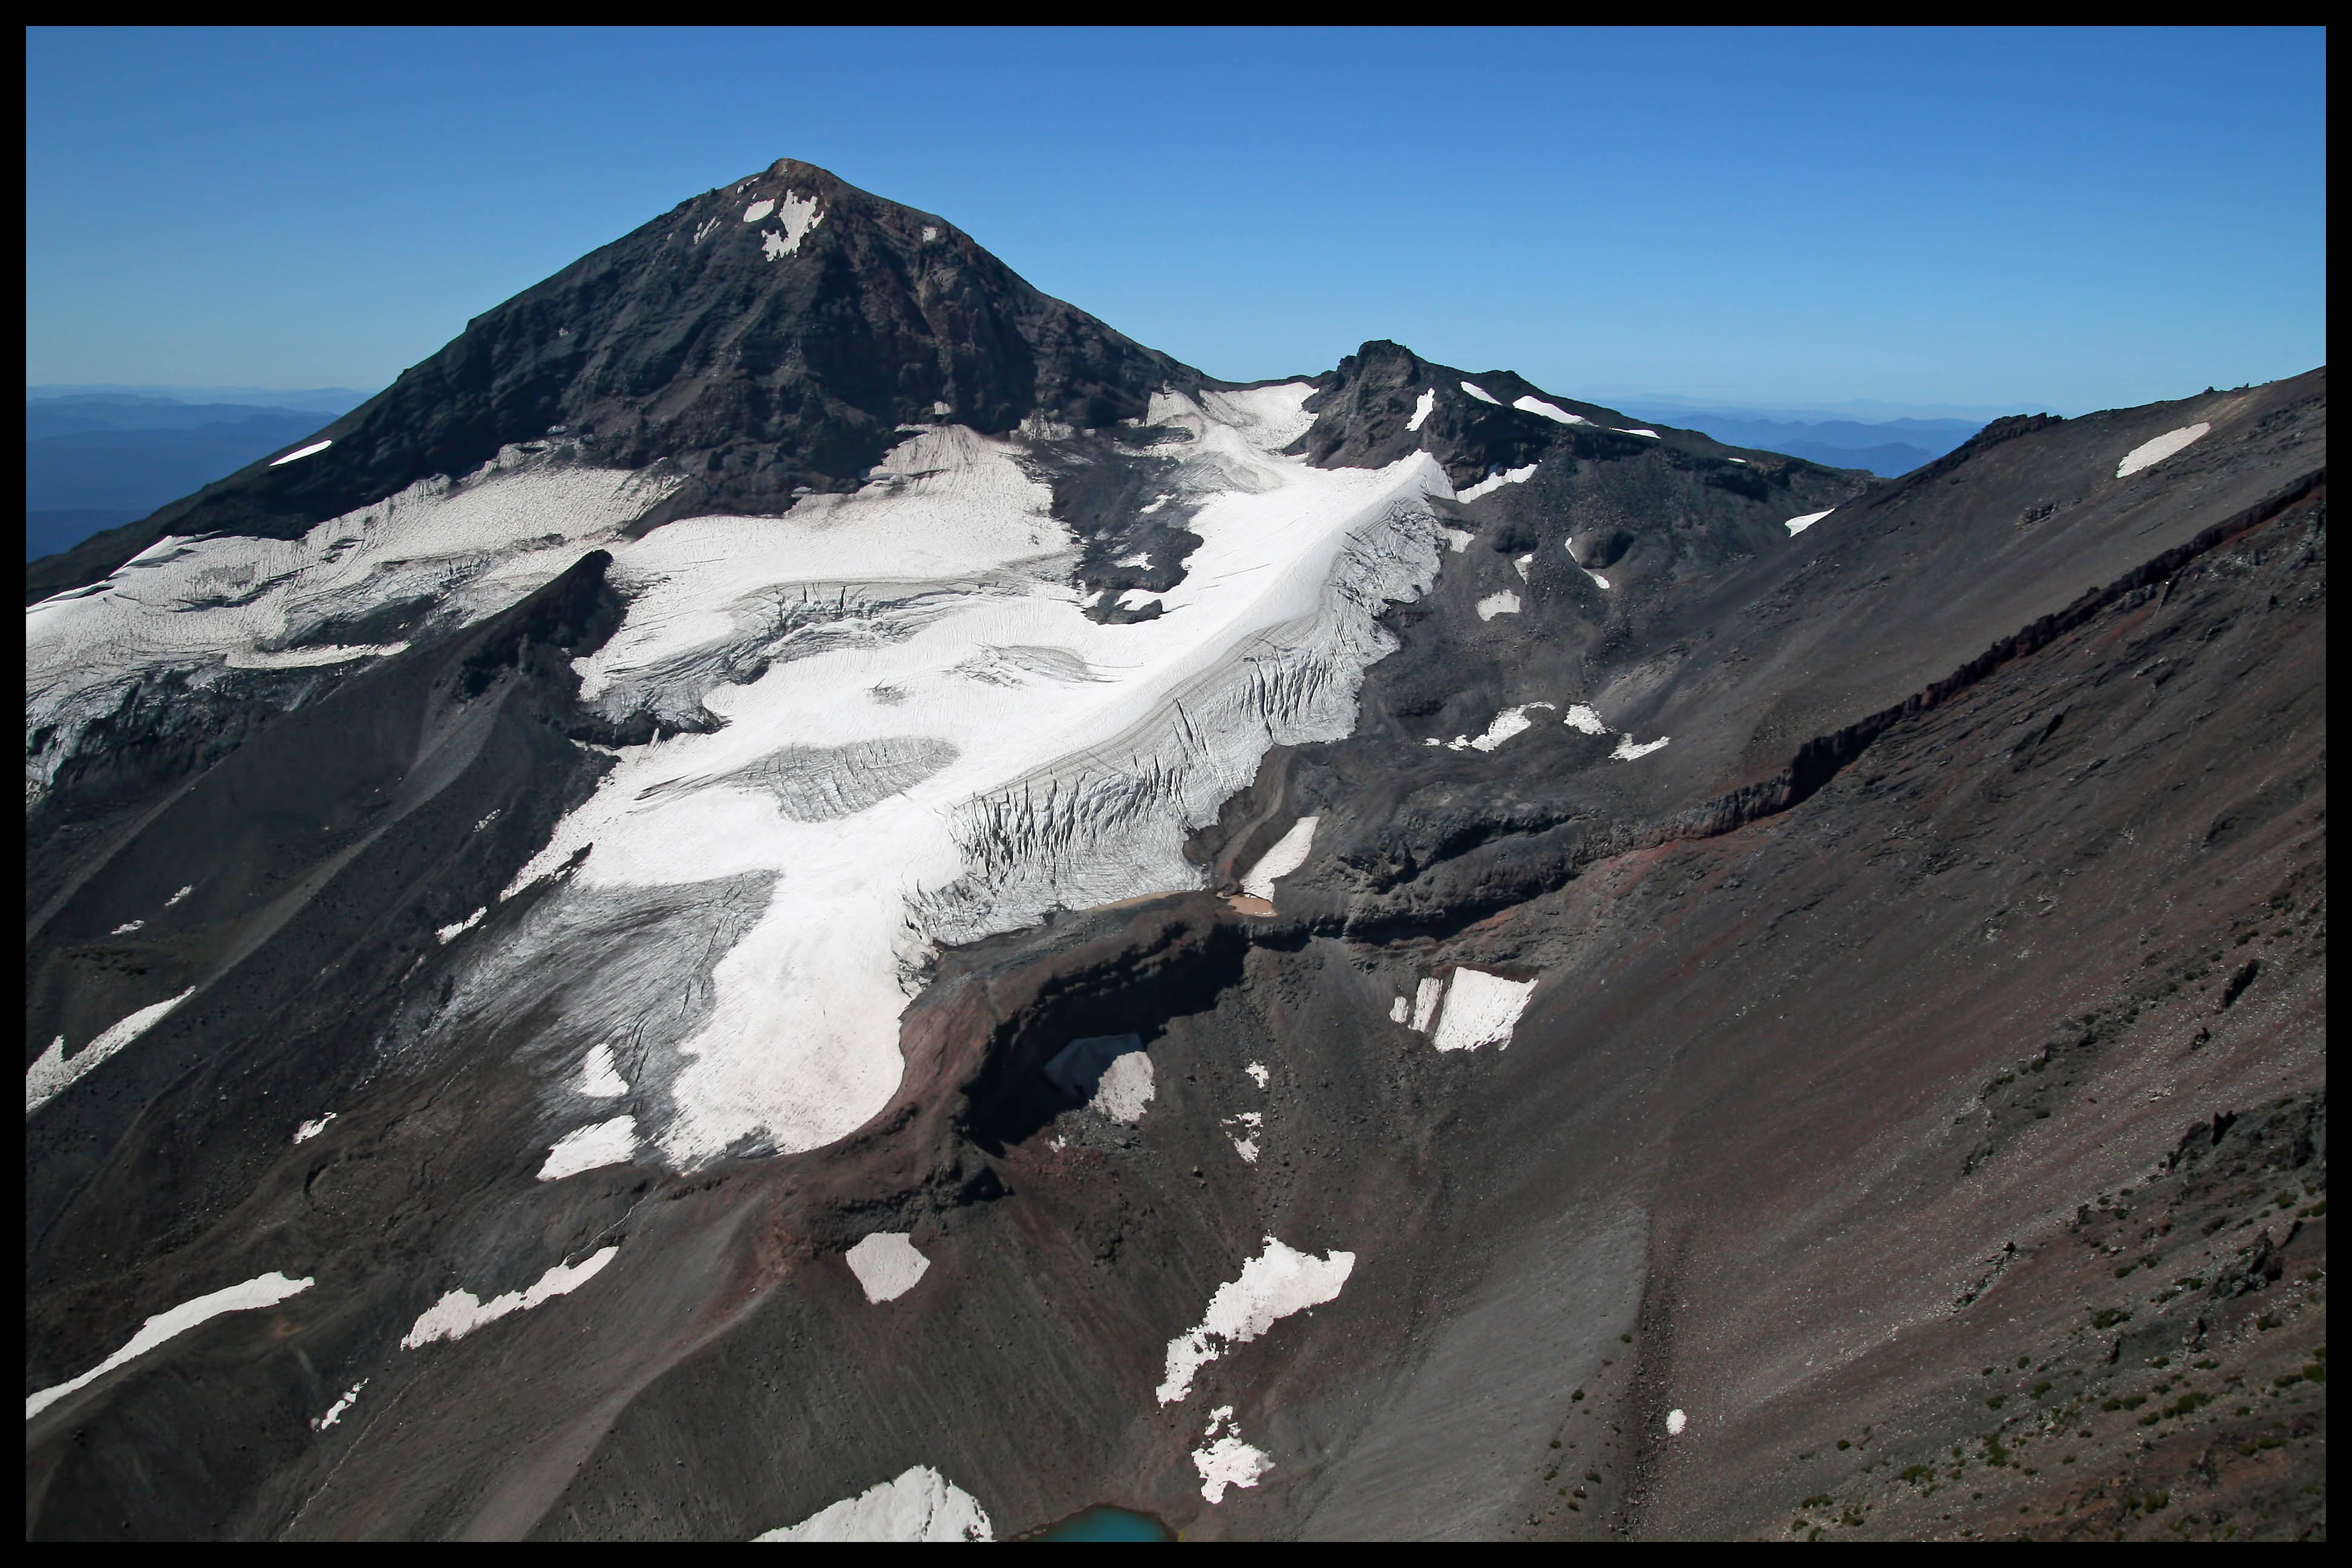 glacial history of mount hood in oregon Mount hood, called wy'east by the multnomah tribe, is a potentially active  stratovolcano in the  in addition to being oregon's highest mountain, it is one of  the loftiest mountains  the height assigned to mount hood's snow-covered  peak has varied over its history  the peak is home to 12 named glaciers and  snowfields.